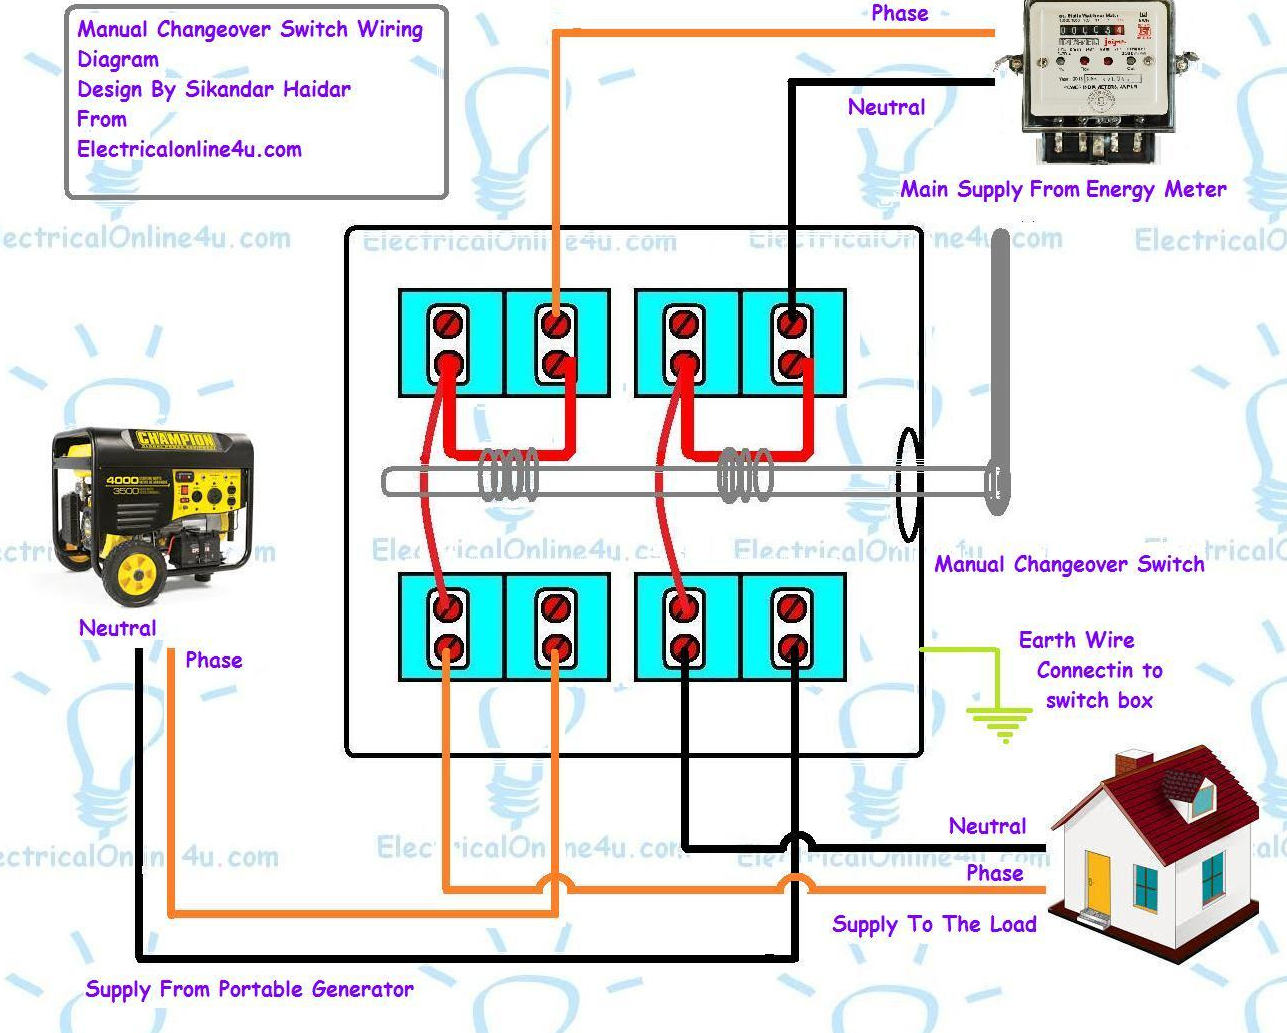 manual changeover switch wiring diagram for portable. Black Bedroom Furniture Sets. Home Design Ideas